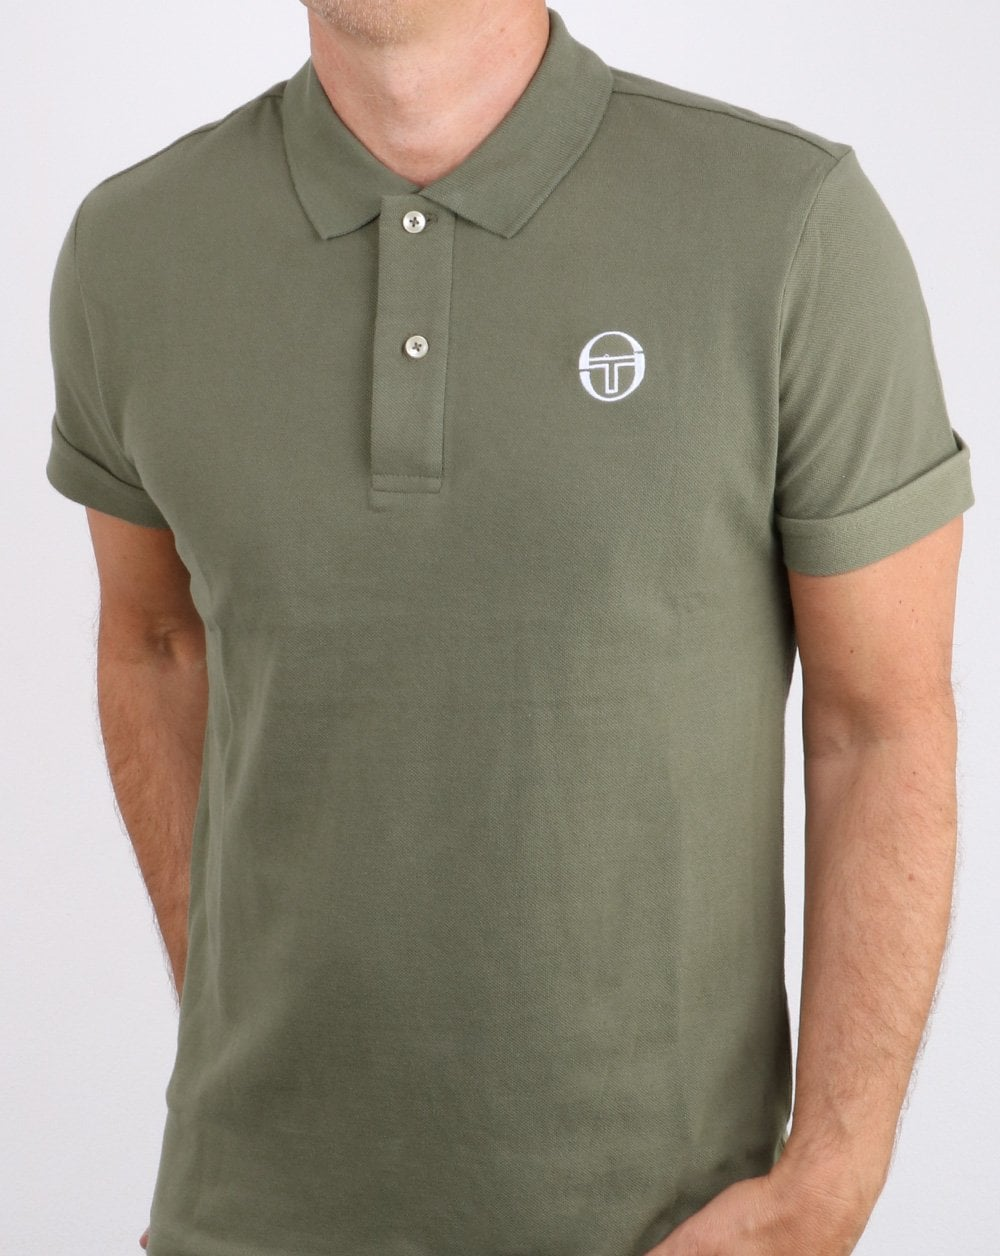 35978ce9 Sergio Tacchini, Classic Polo Shirt, Olive/white, Mens, Smart, Cotton